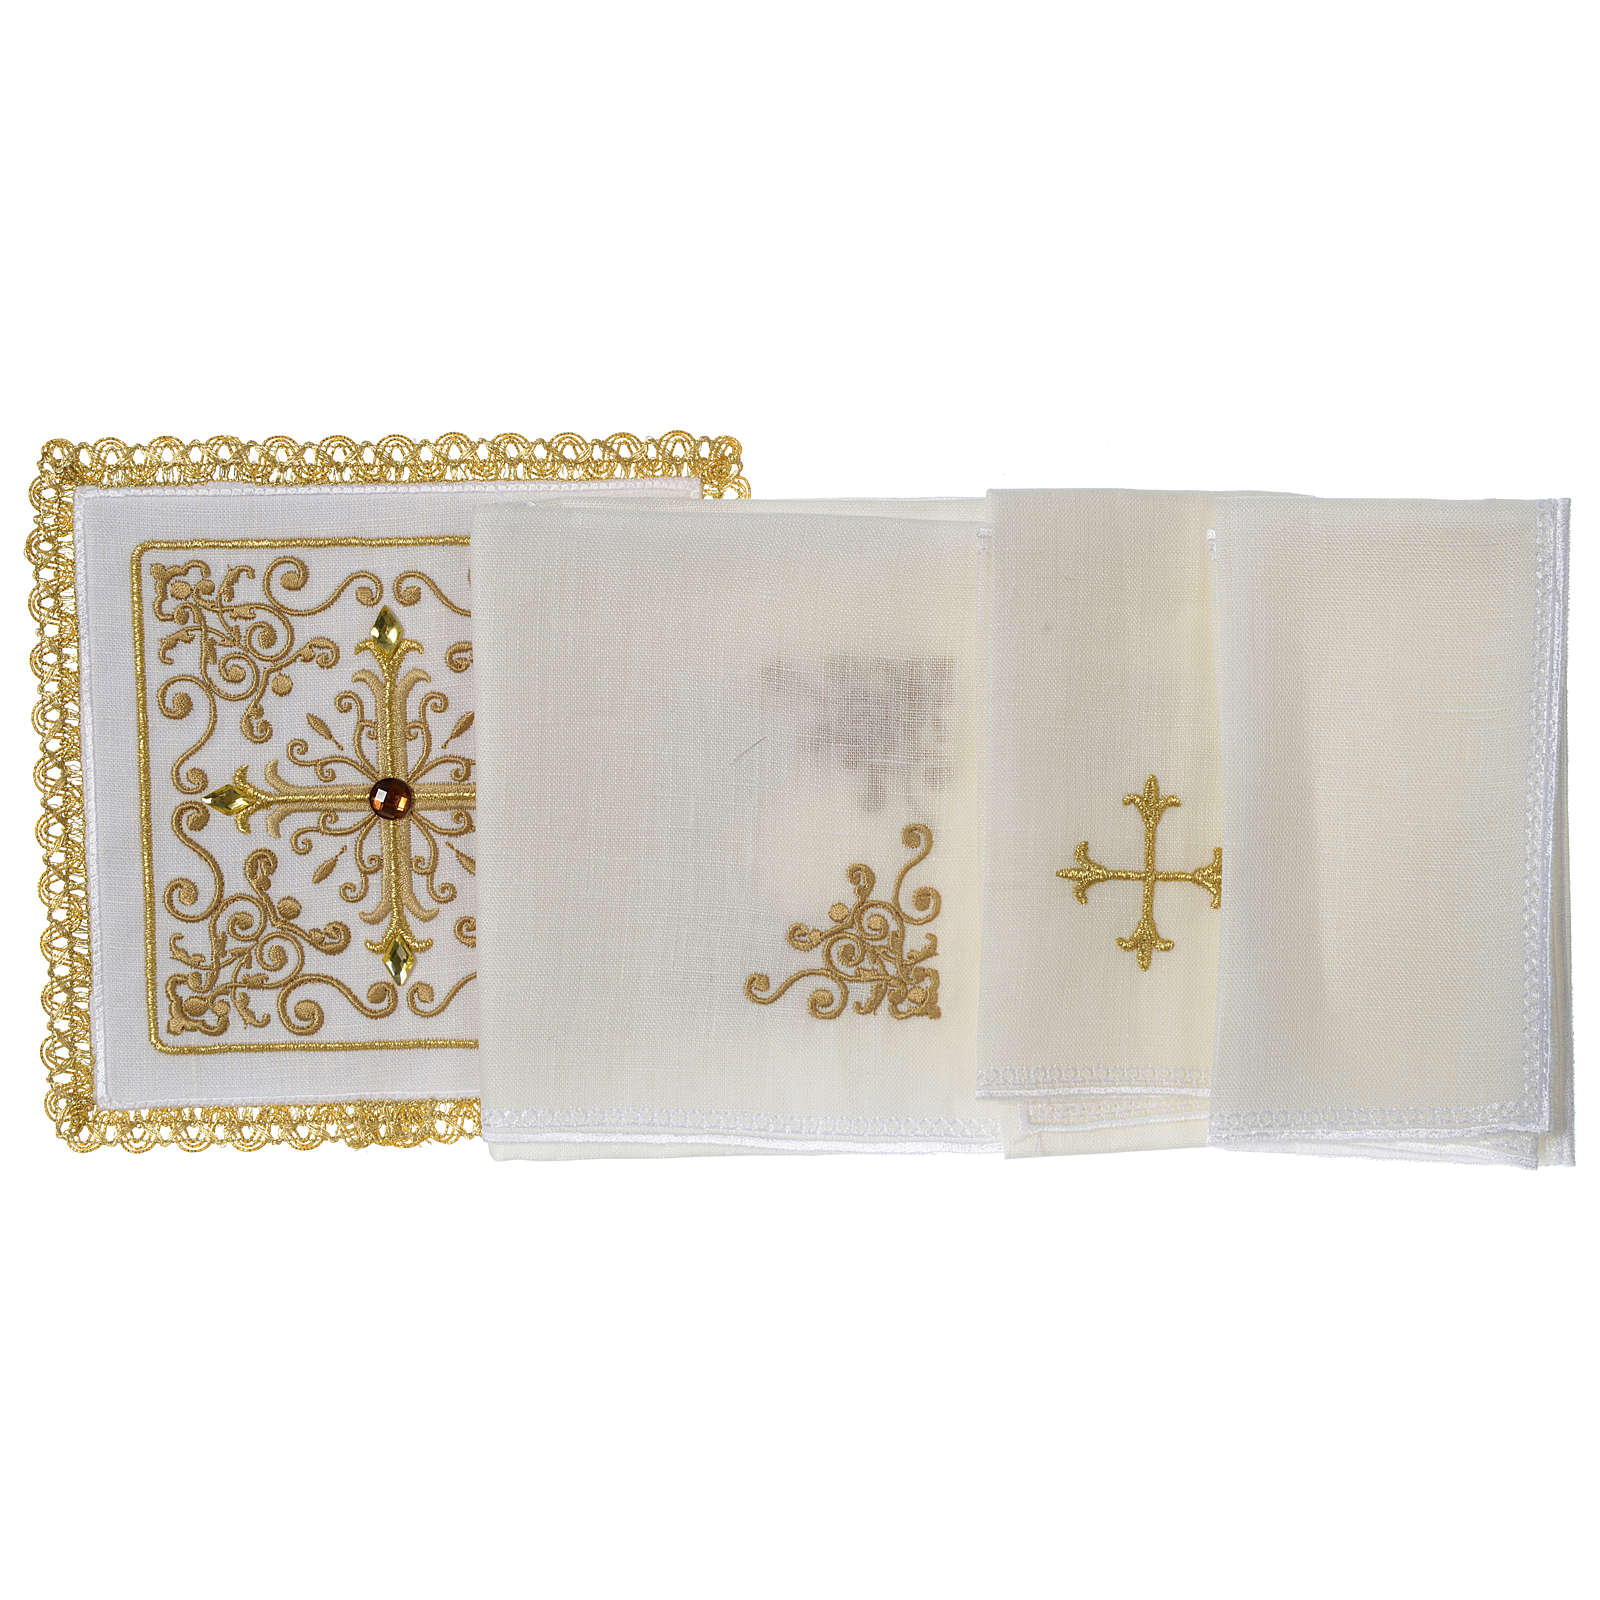 Altar linens set 100% linen Cross and vine with stones 4